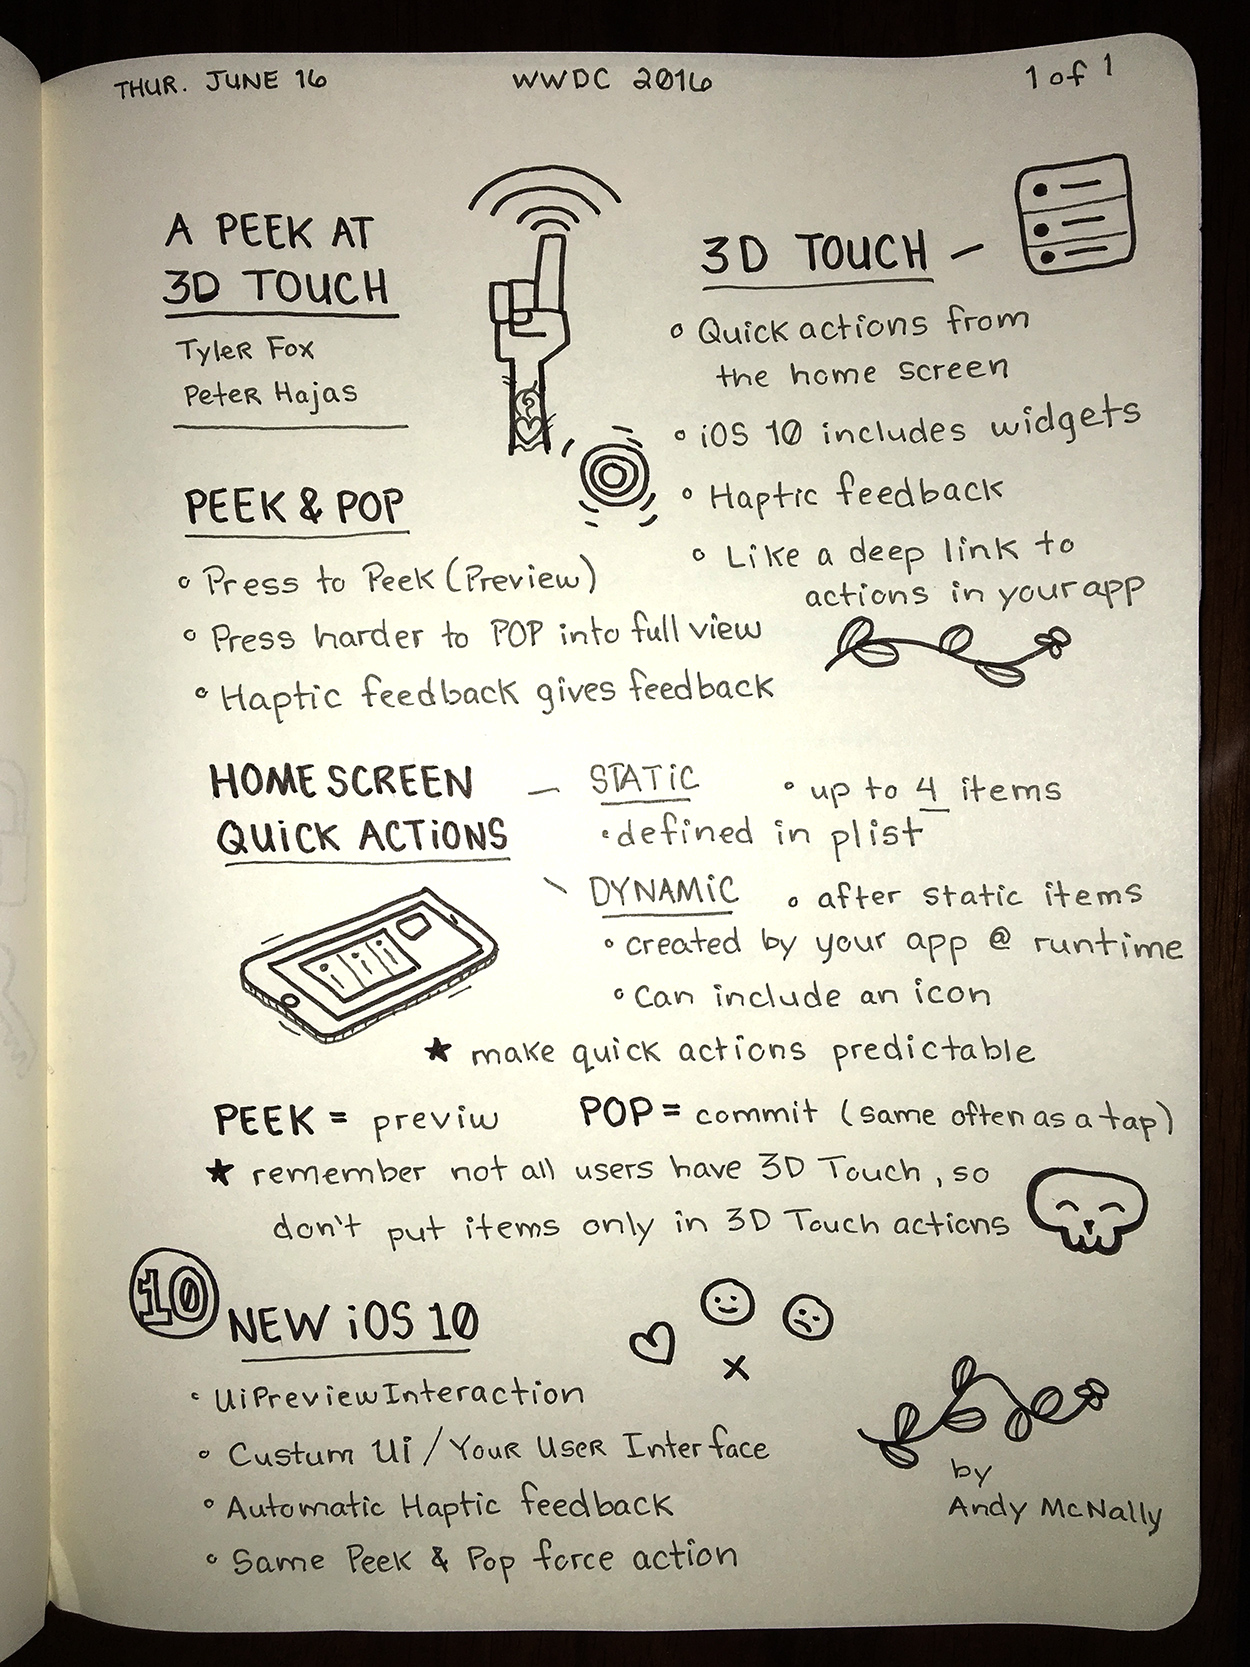 WWDC sketchnotes - A Peek at 3D Touch